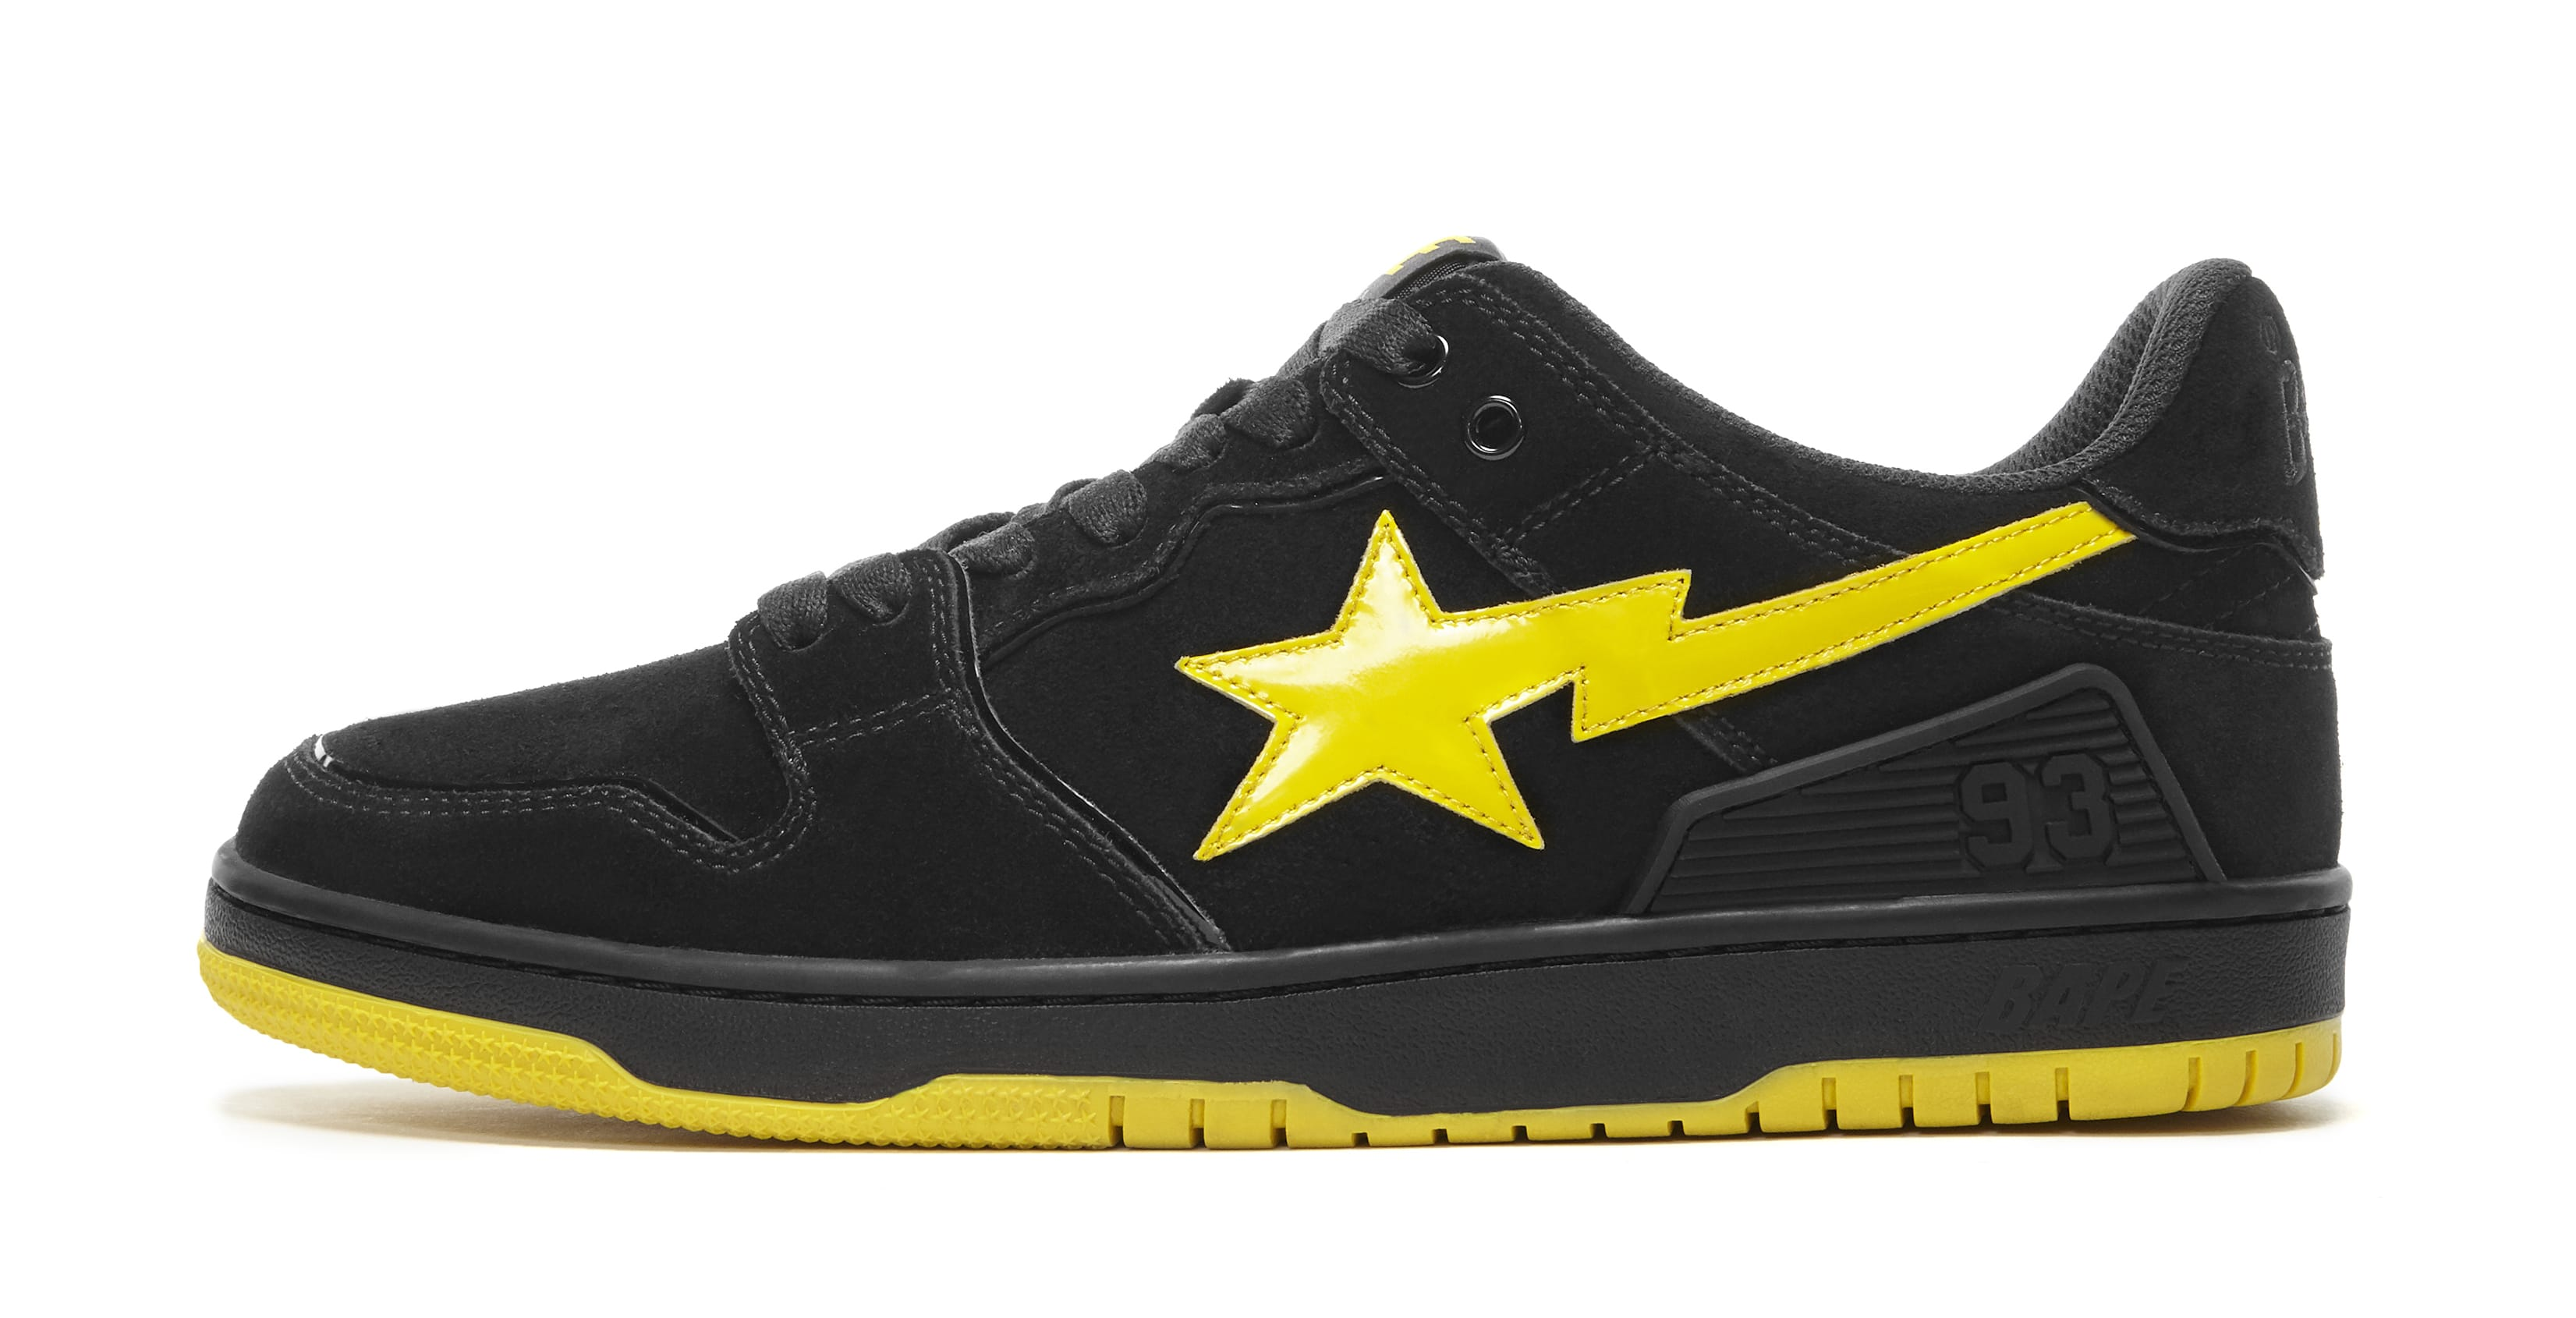 Bape Sk8 Sta Black and Electric Yellow Lateral